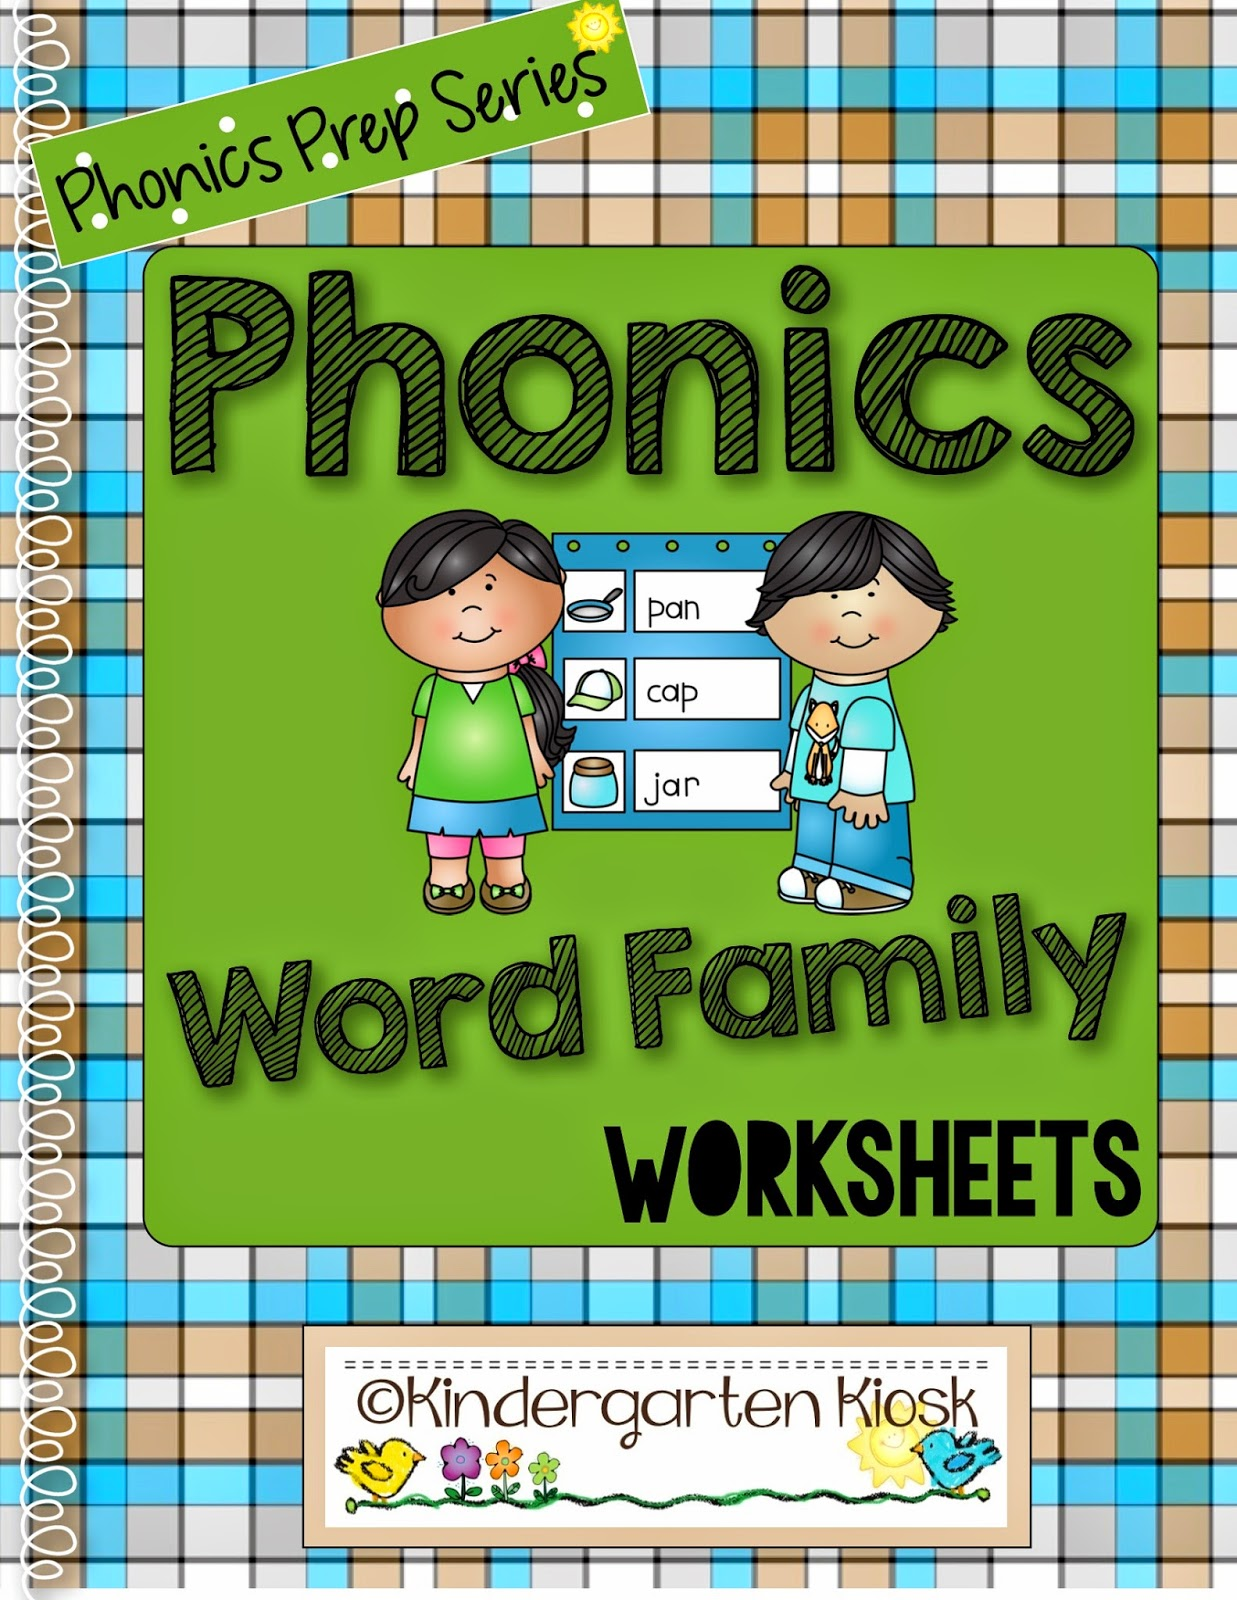 Phonics Prep Series Word Family Worksheets